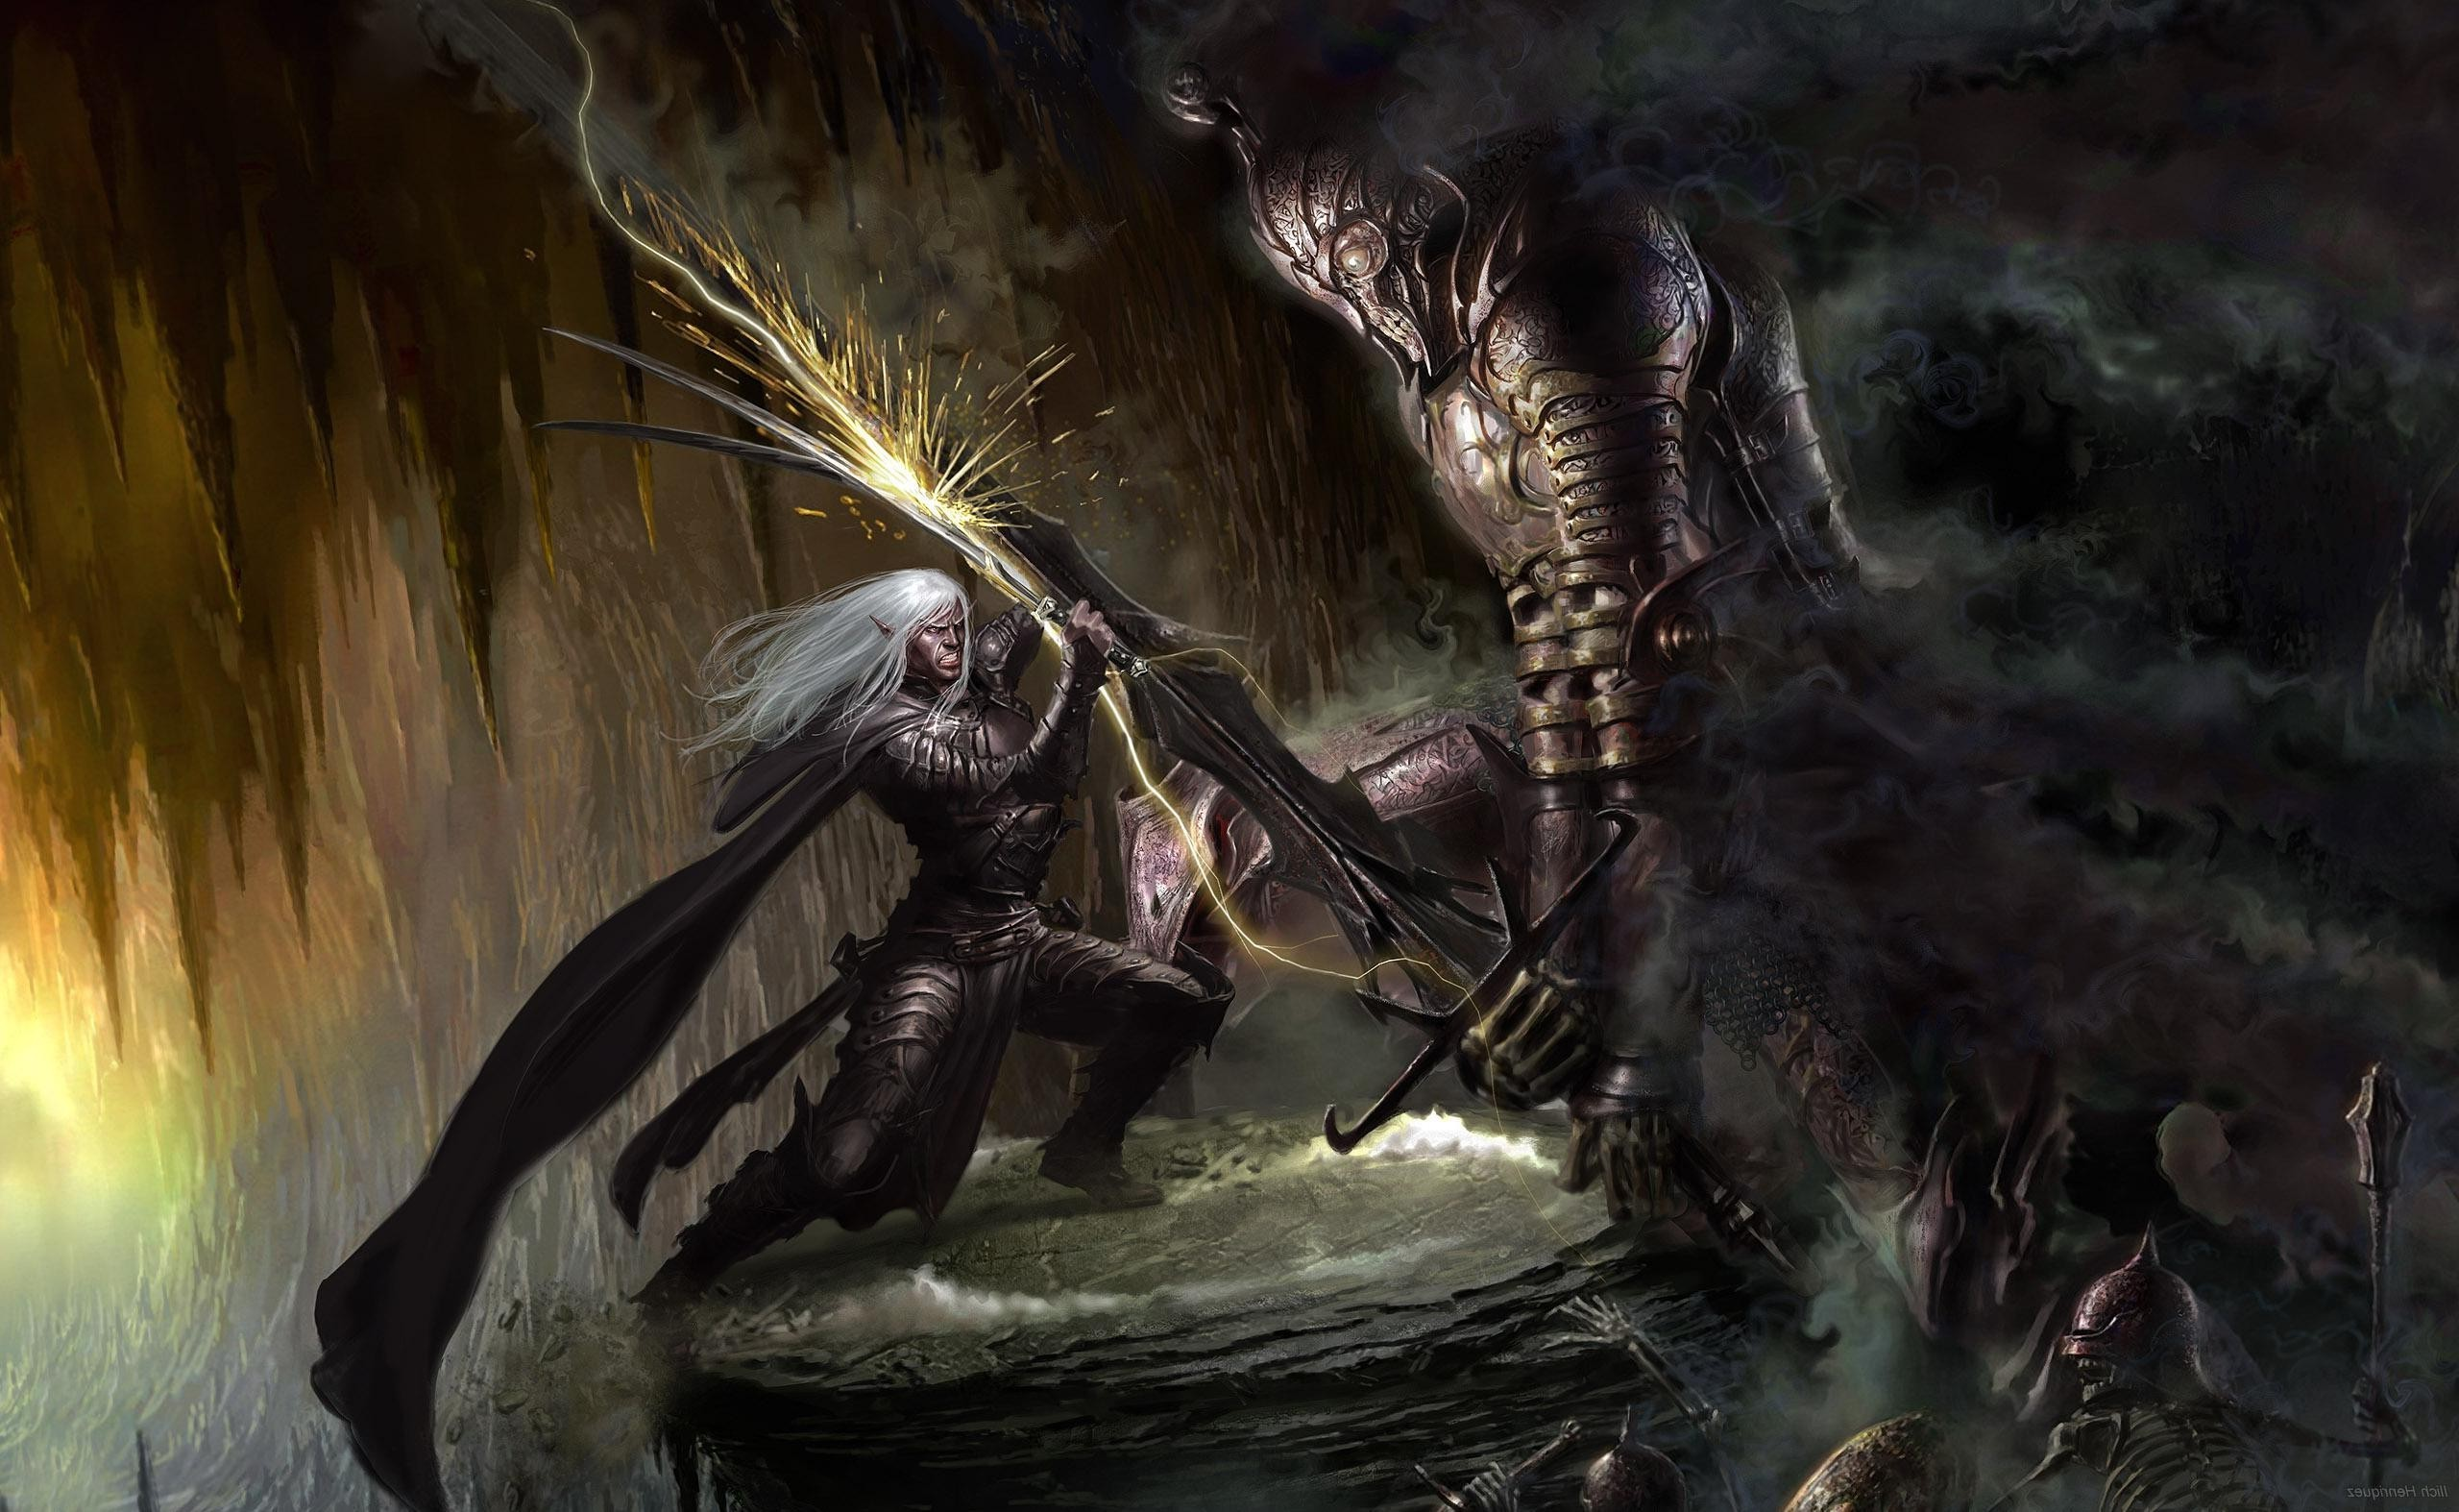 wallpaper.wiki-Desktop-Dungeons-And-Dragons-Backgrounds-PIC-